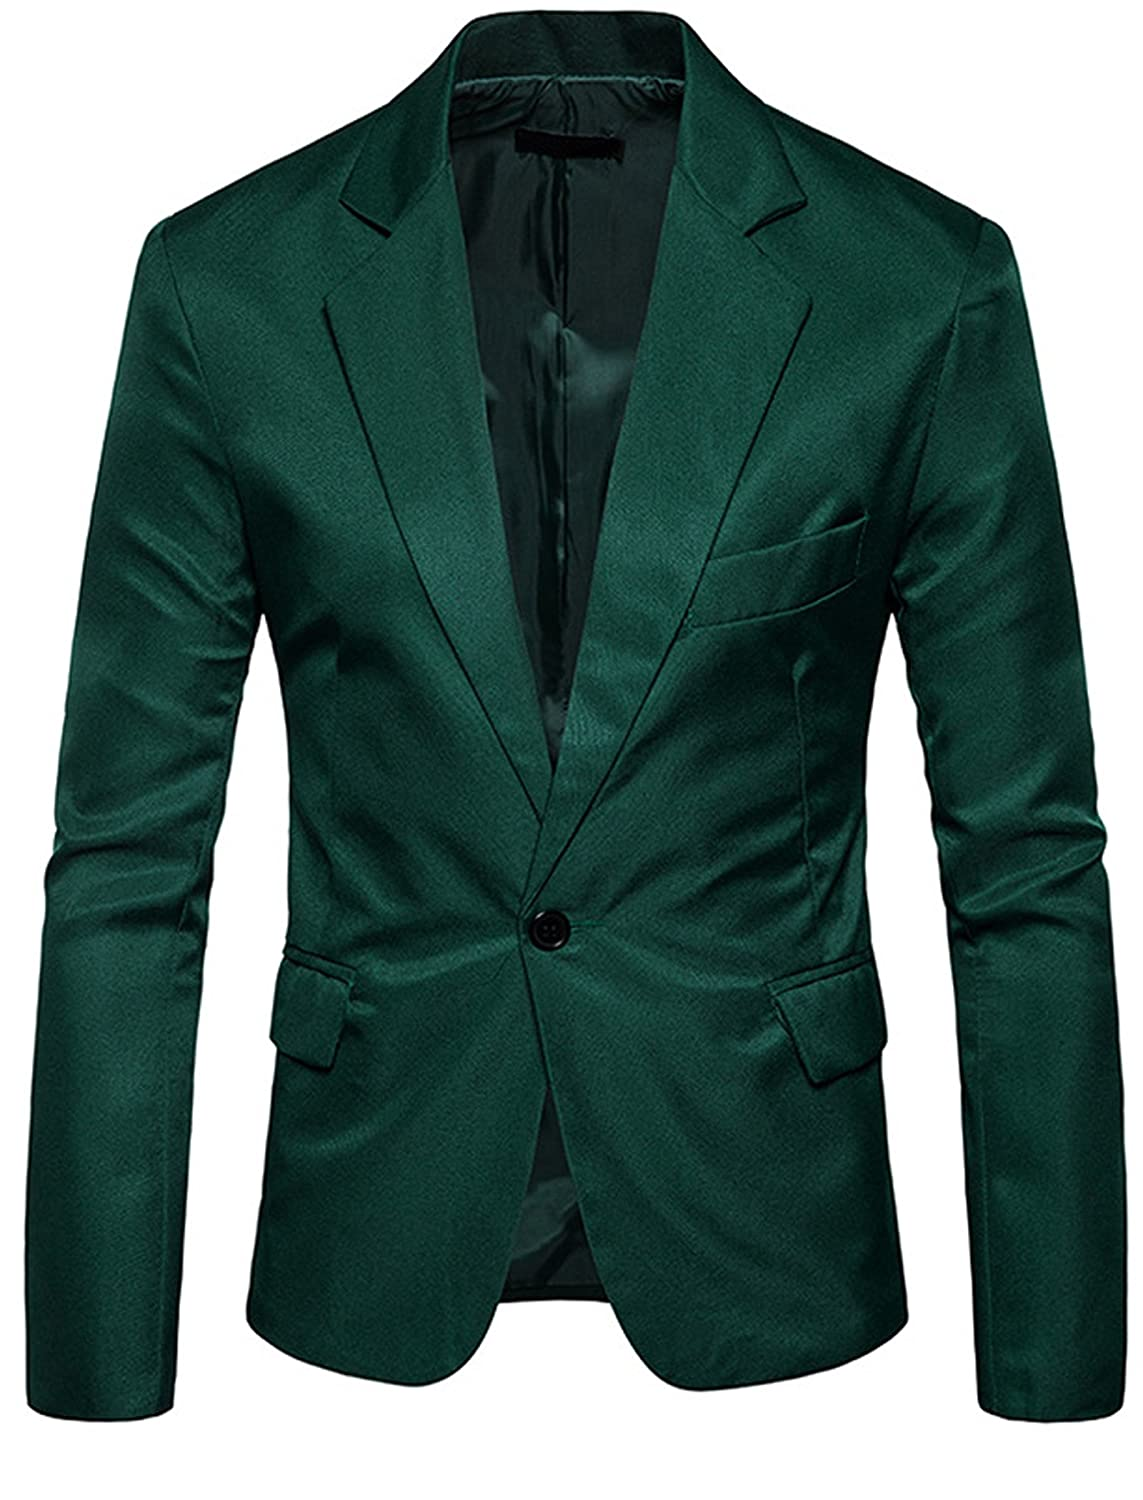 FEHAAN Men's Slim Fit Suit Side-Vent One-Button Coats Jacket